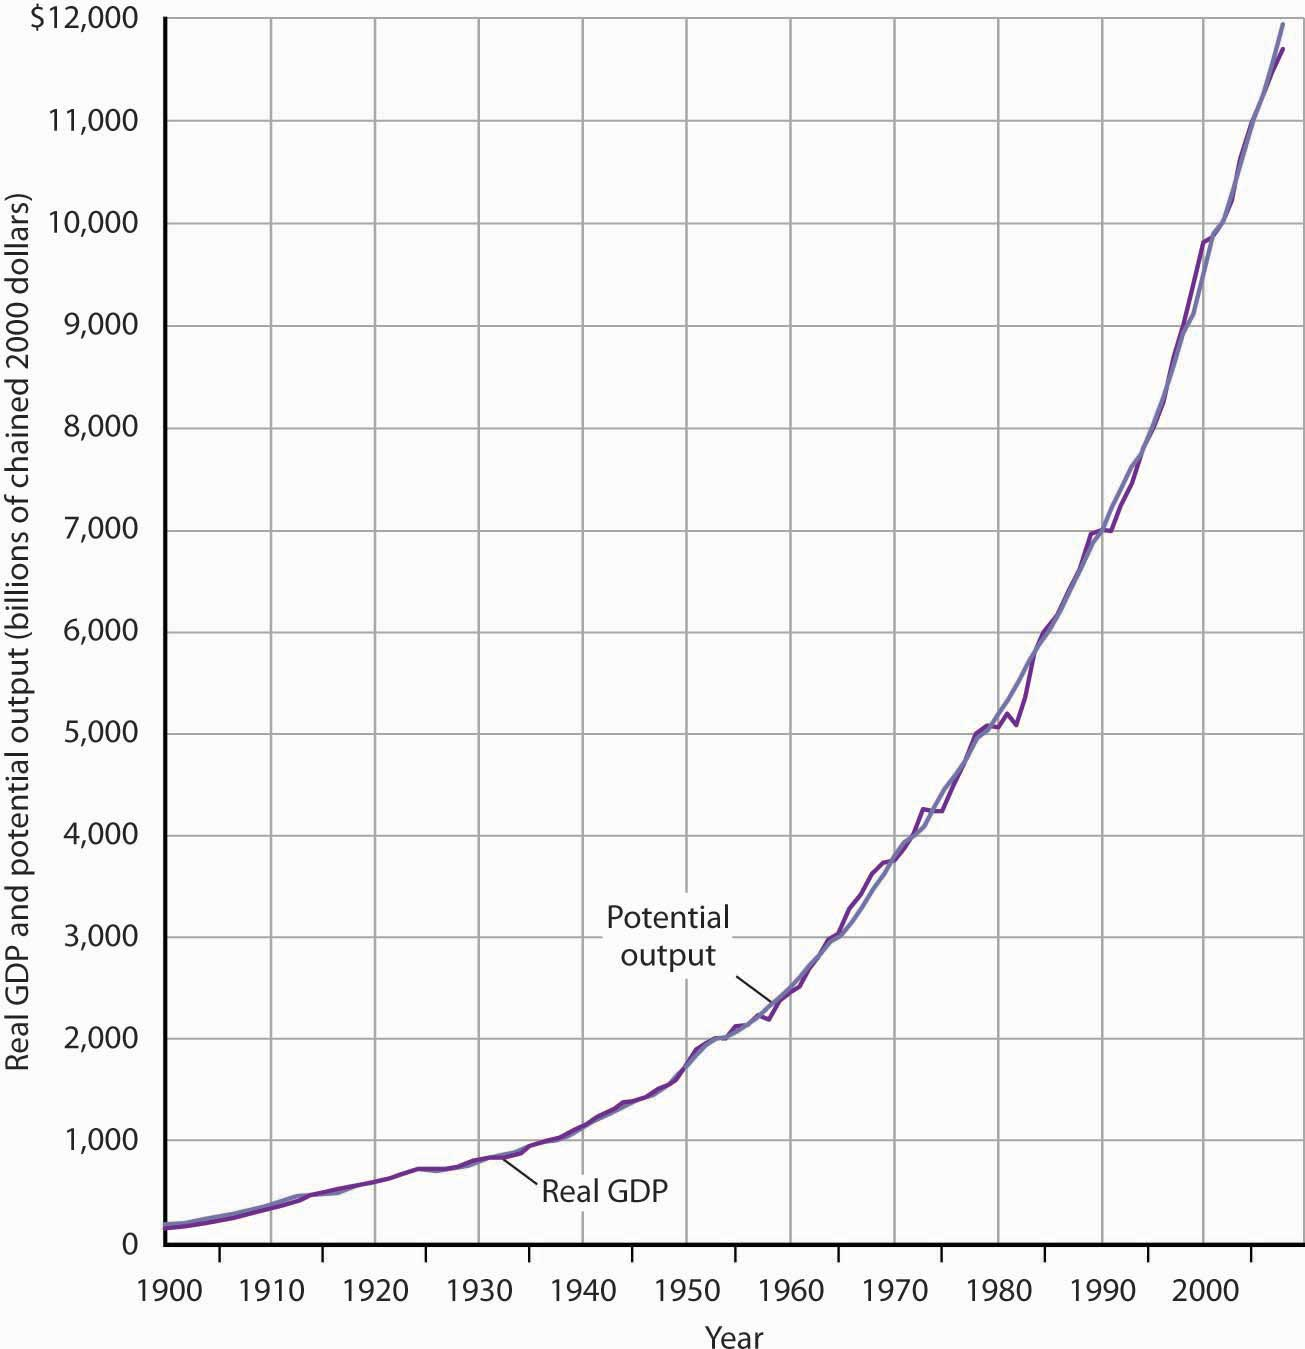 Line graph showing the rise of Real GDP from 1900 to 2008.